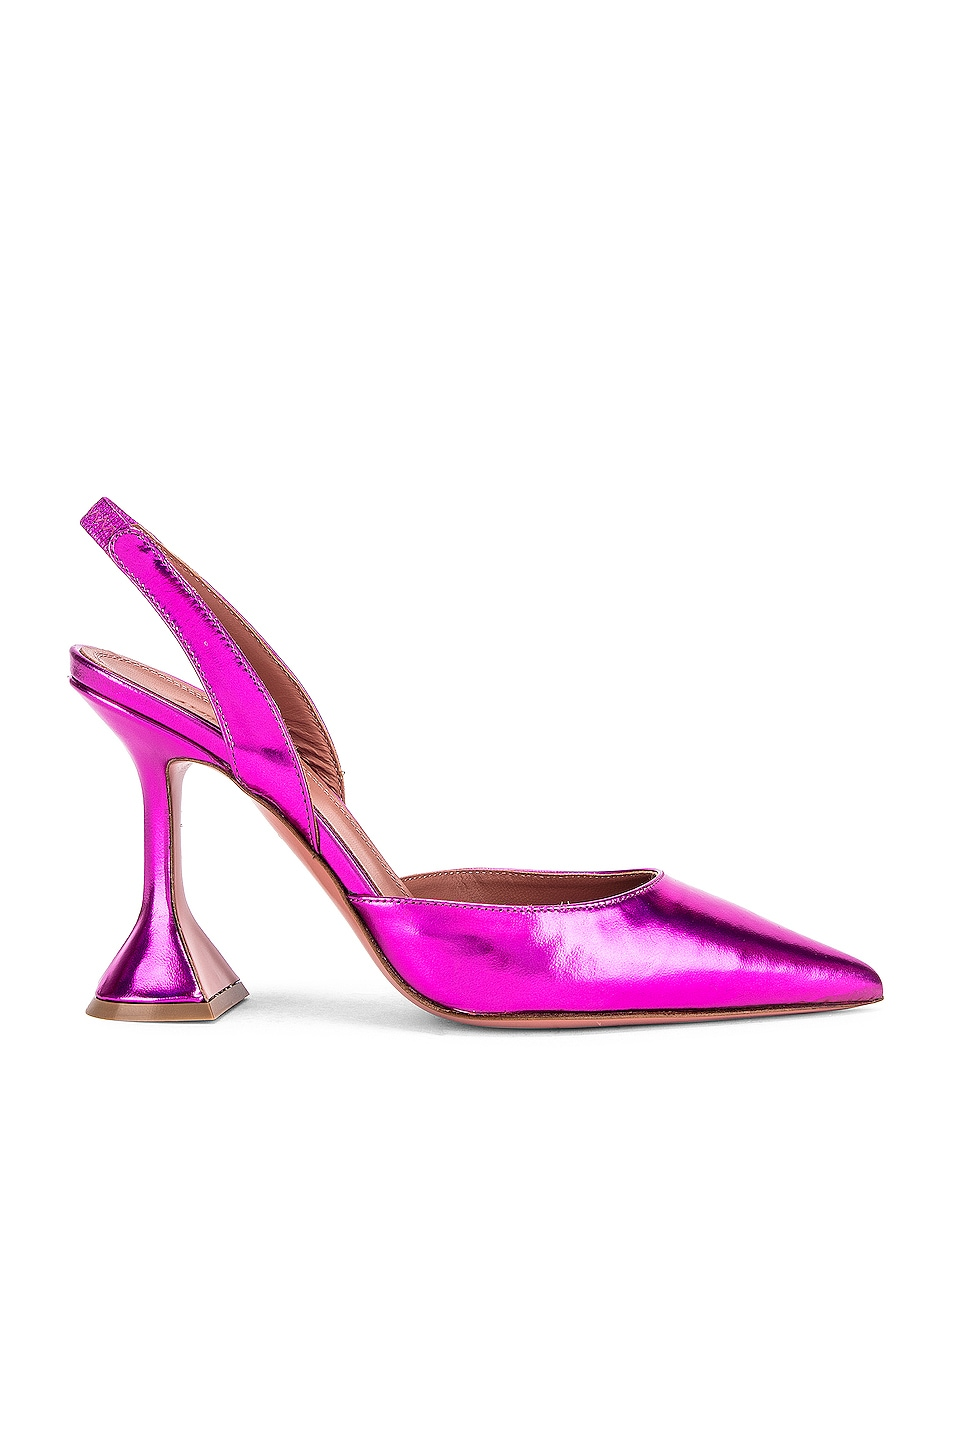 Image 1 of AMINA MUADDI Holli Slingback in Metal Fuchsia